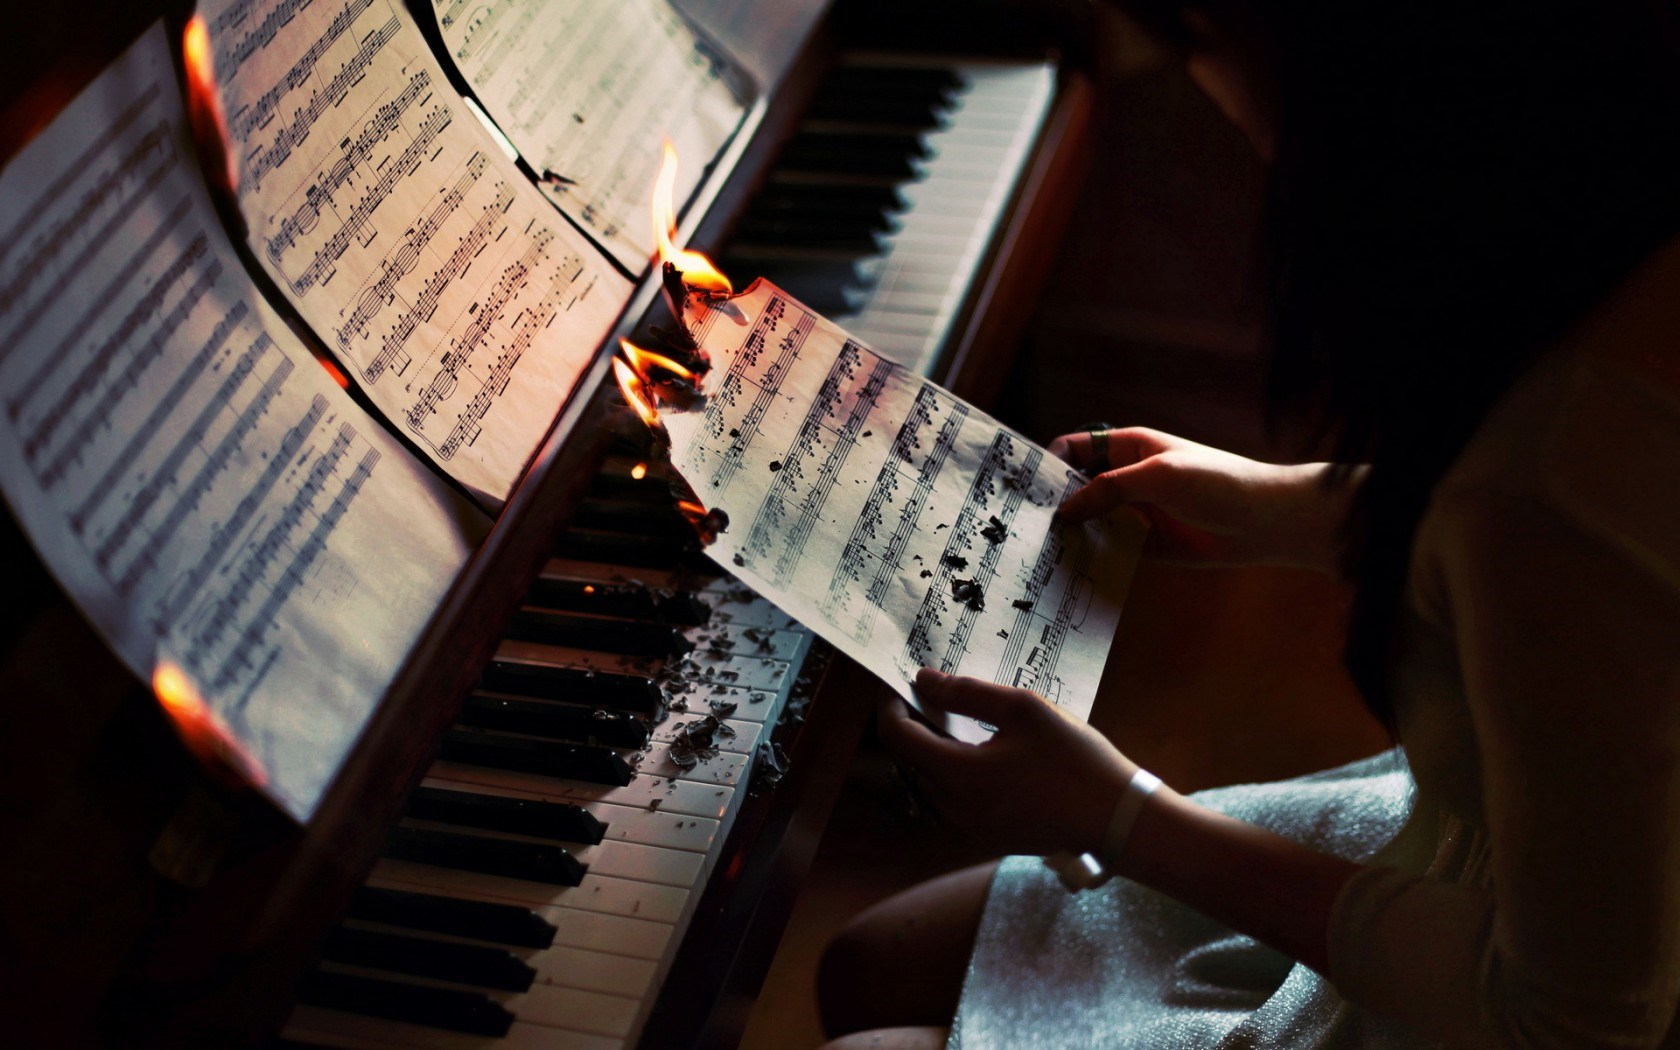 Piano Music Girl Situation Fire